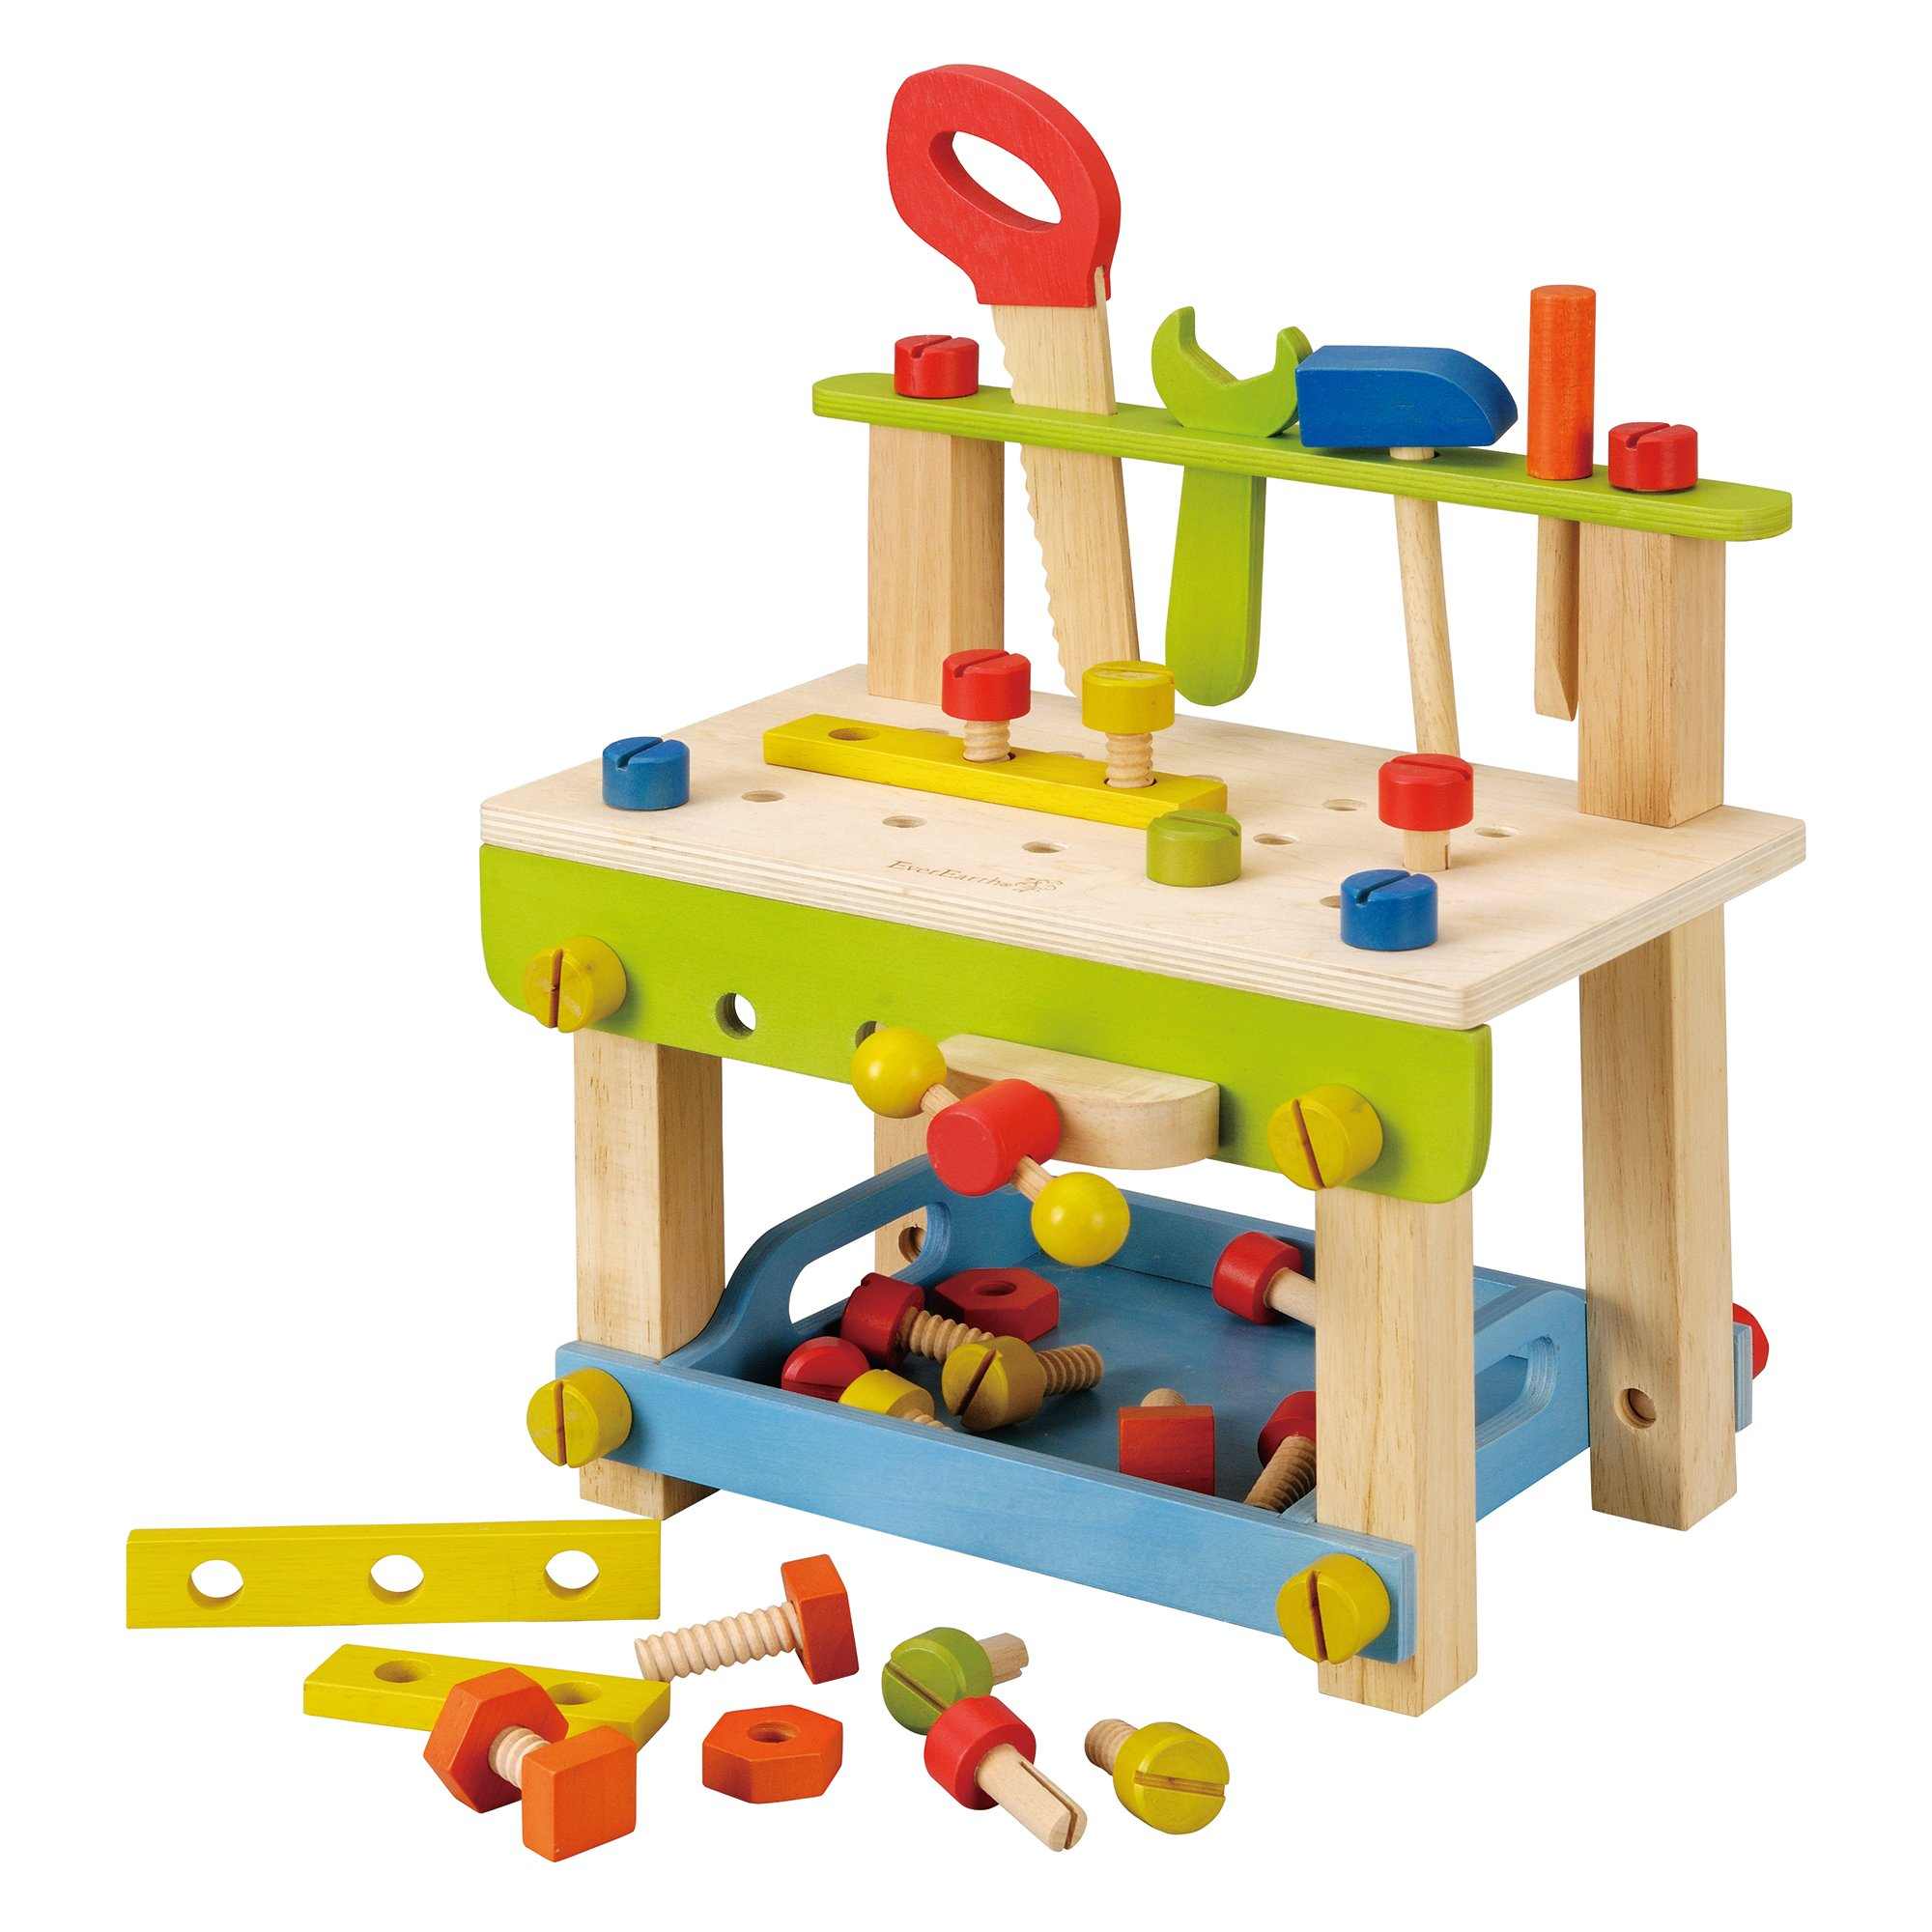 EverEarth - Large Workbench (32688)